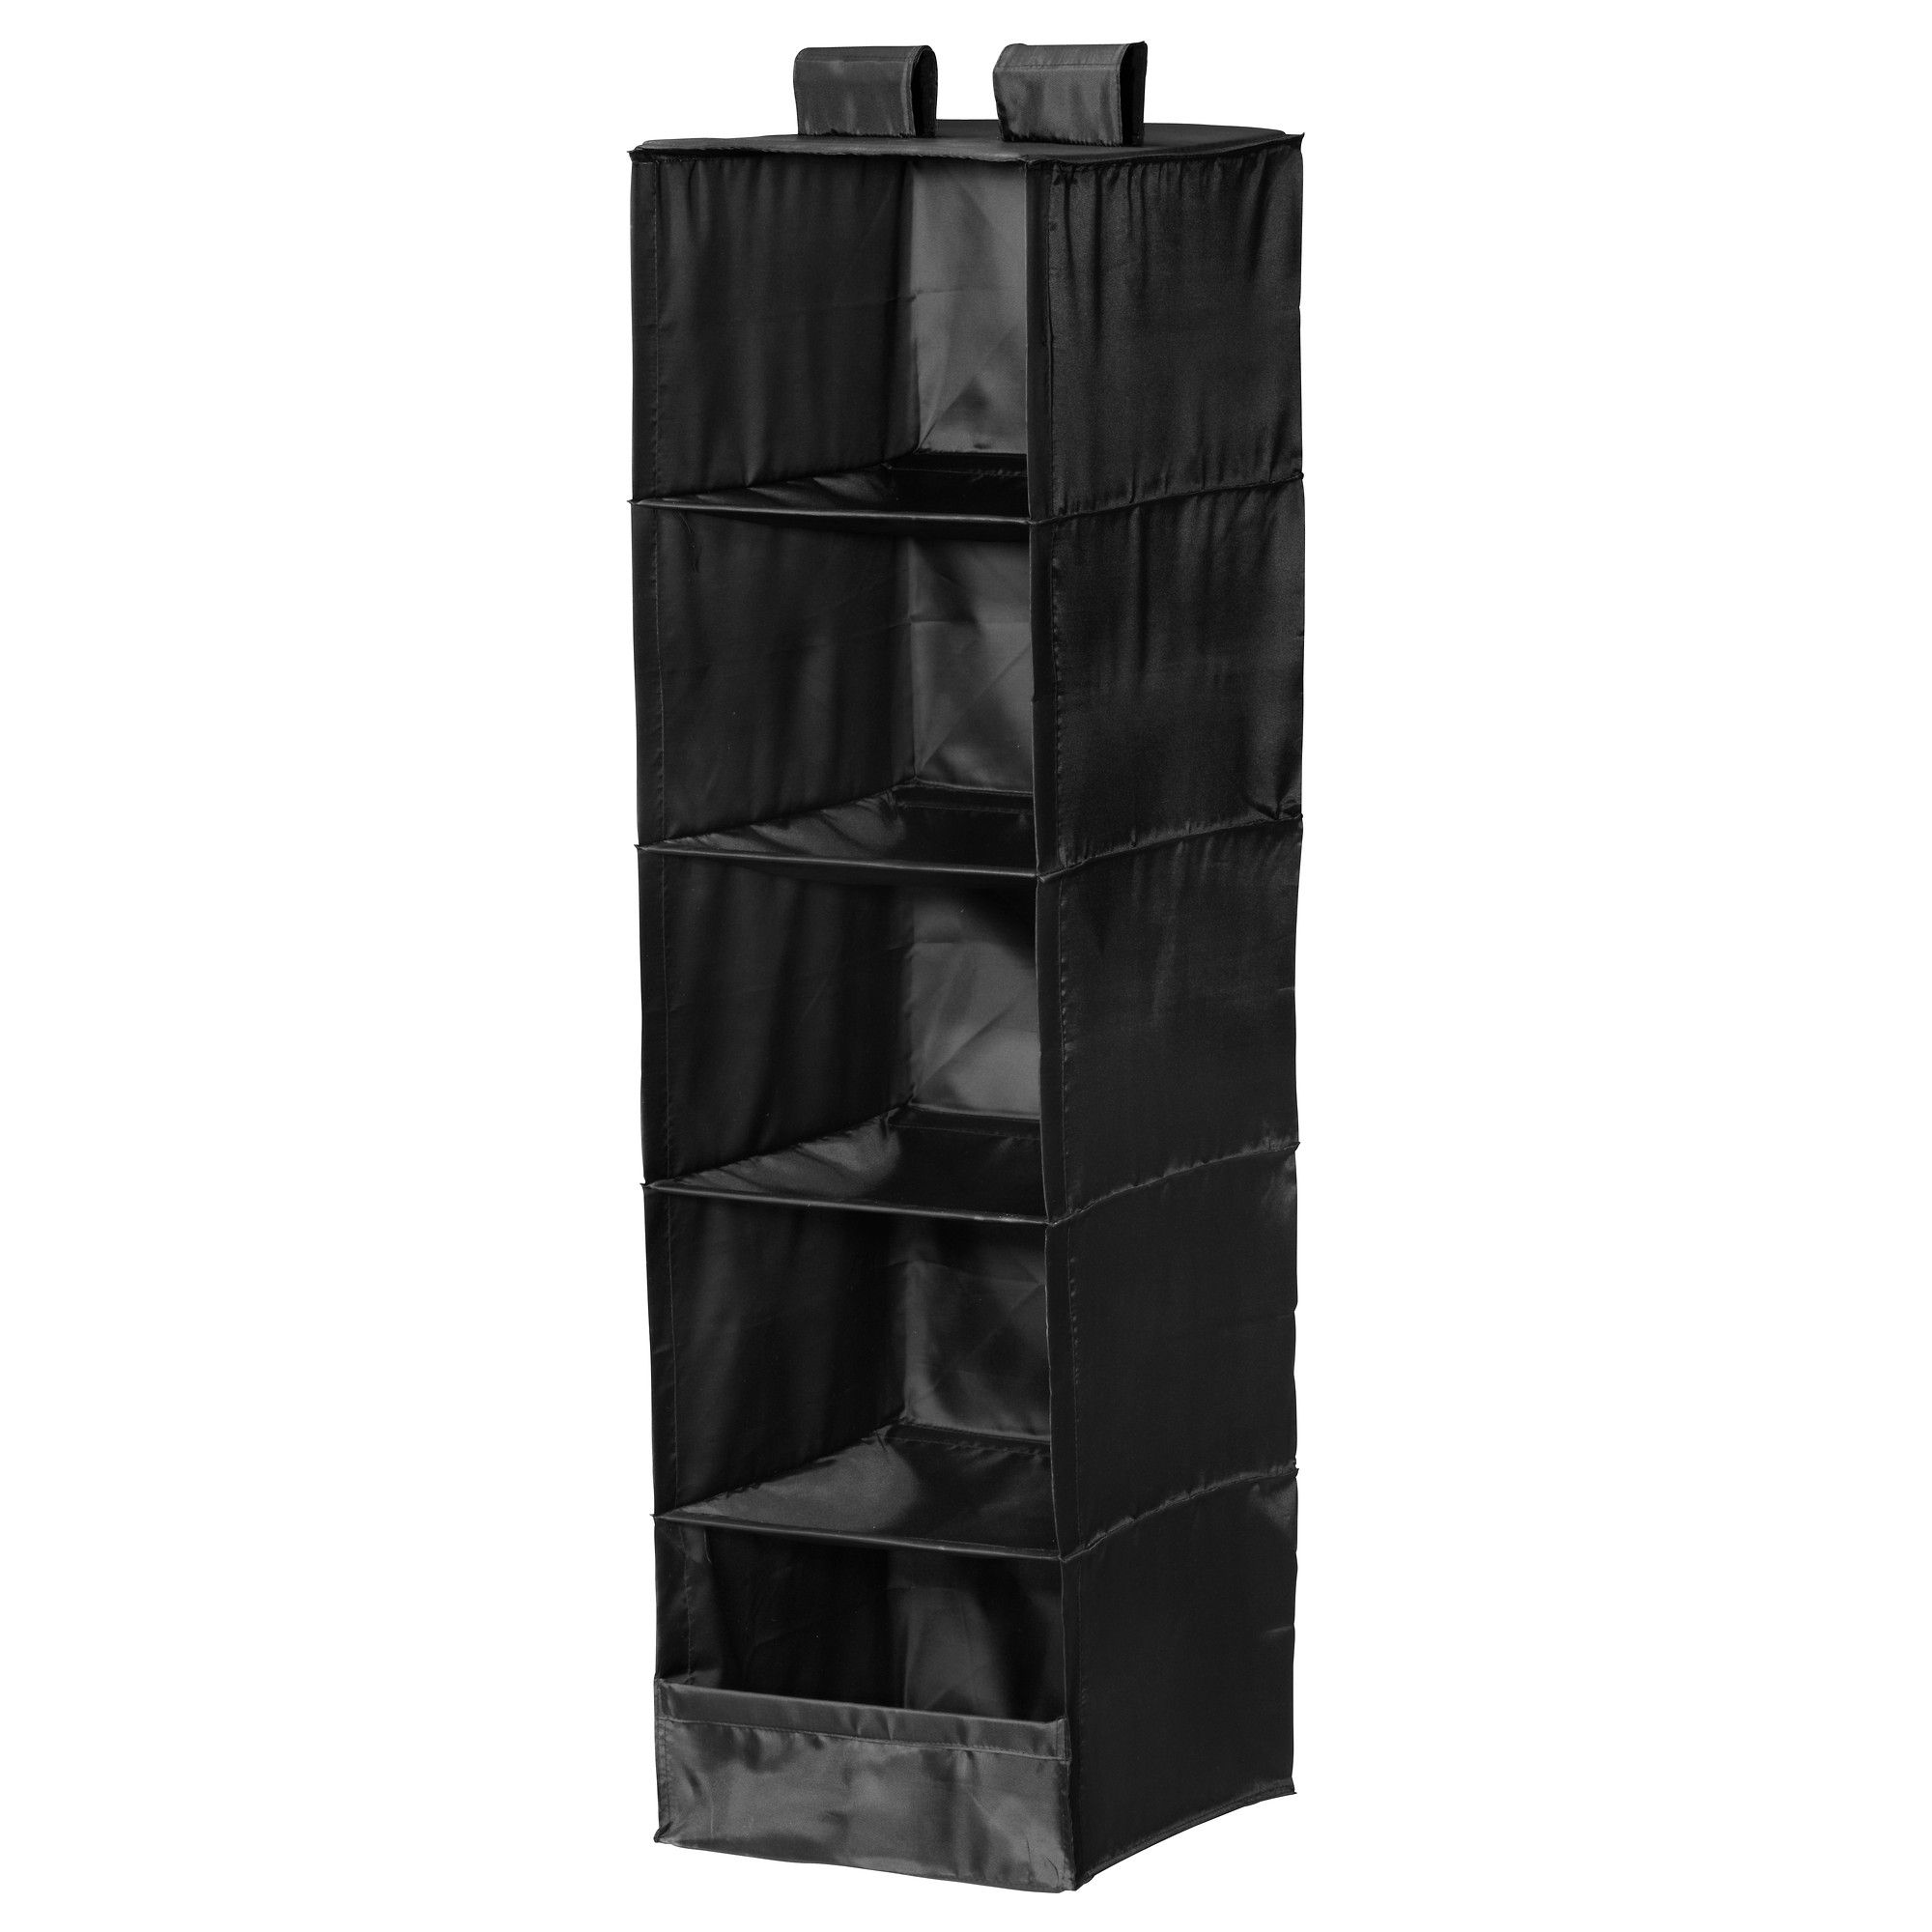 Furniture Home Furnishings Find Your Inspiration Ikea Hanging Closet Organizer Hanging Clothes Organizer